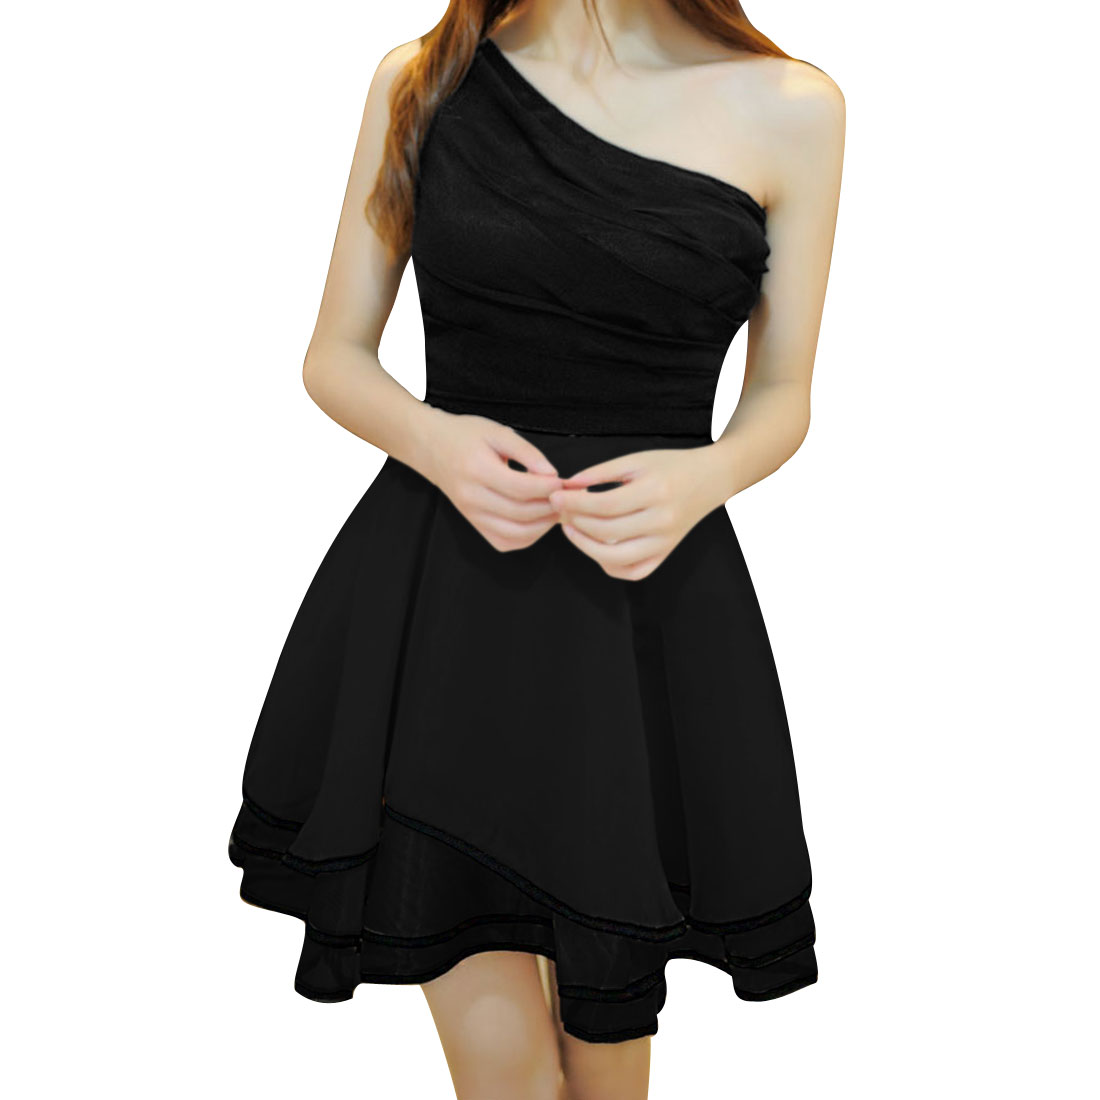 Women Texture Stretchy Sleeveless Above Knee Dress Black XS